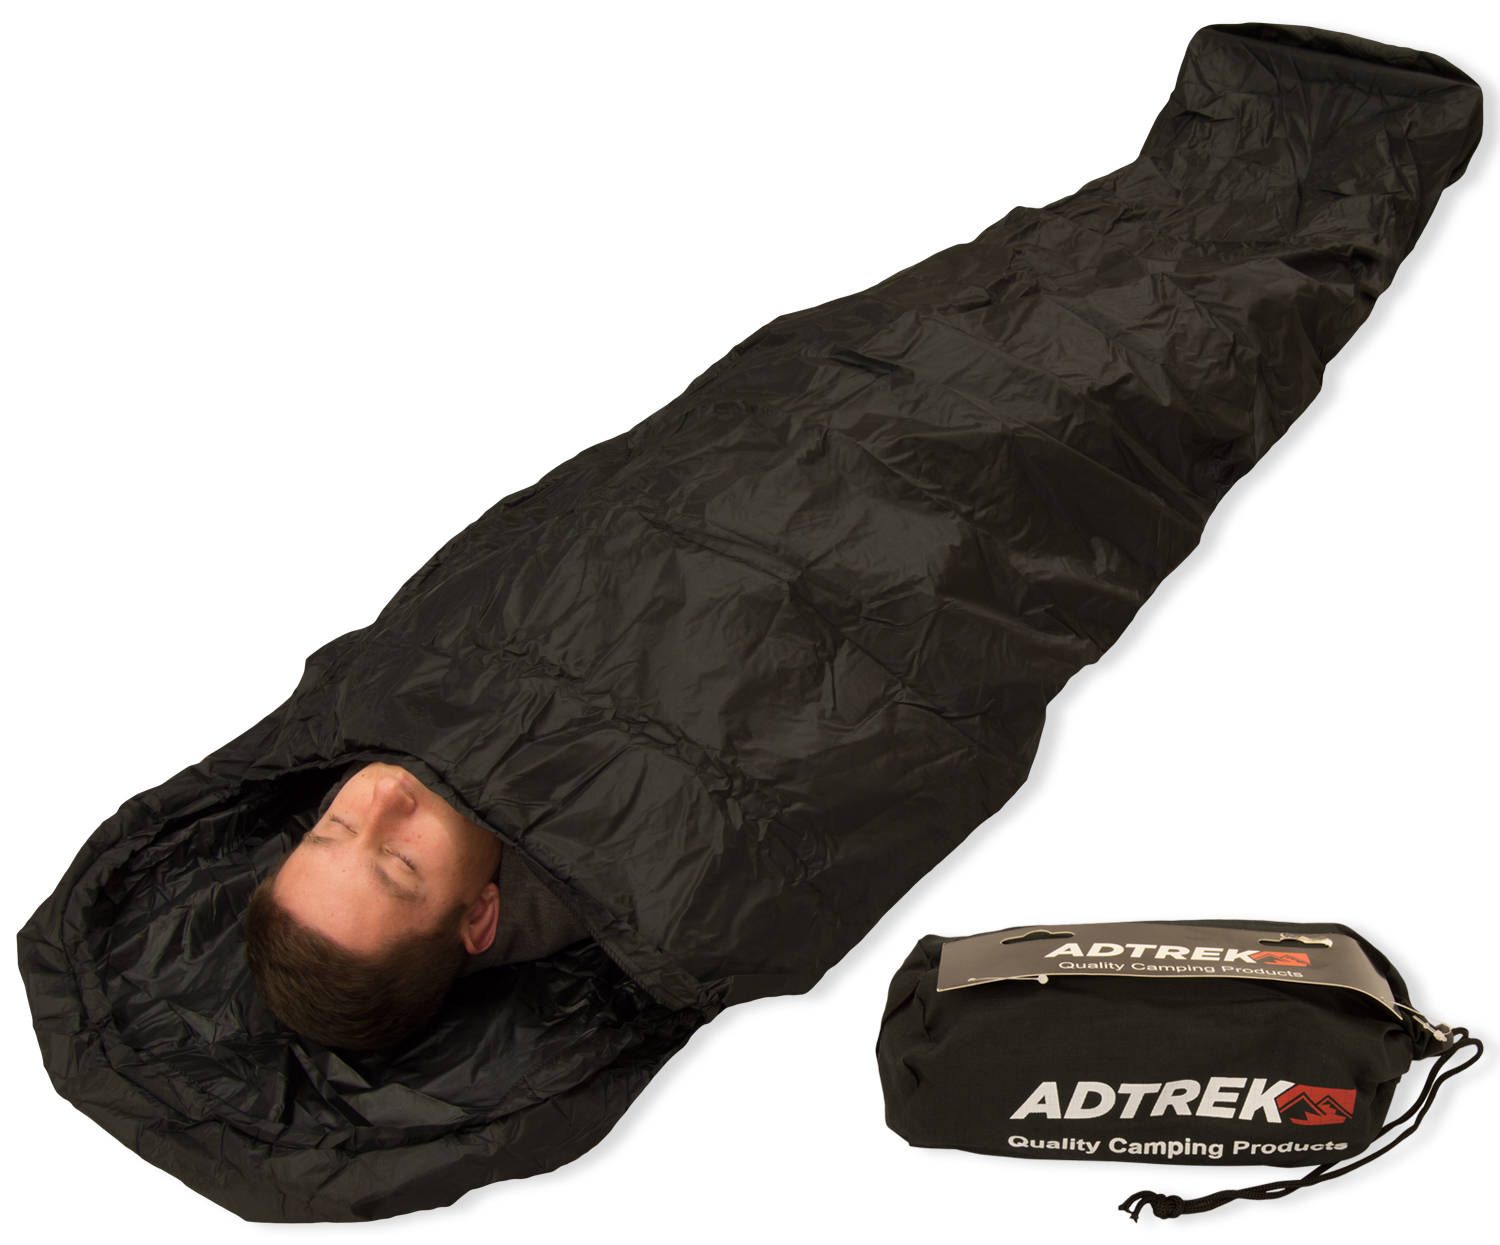 Adtrek Sleeping Bag Bivvy Bag | Sleeping Bags